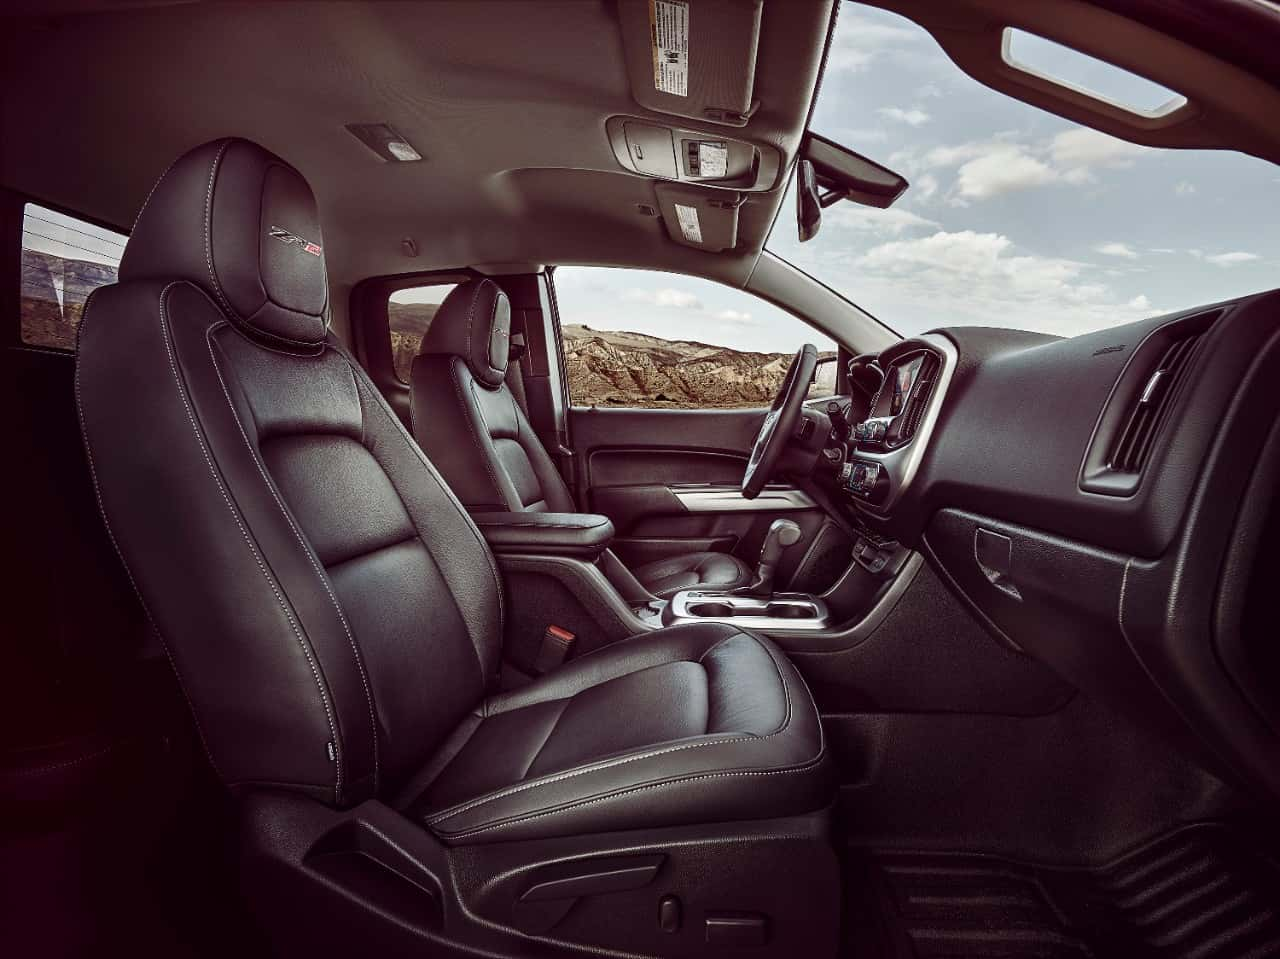 2017 chevrolet colorado zr2 interior cabin front